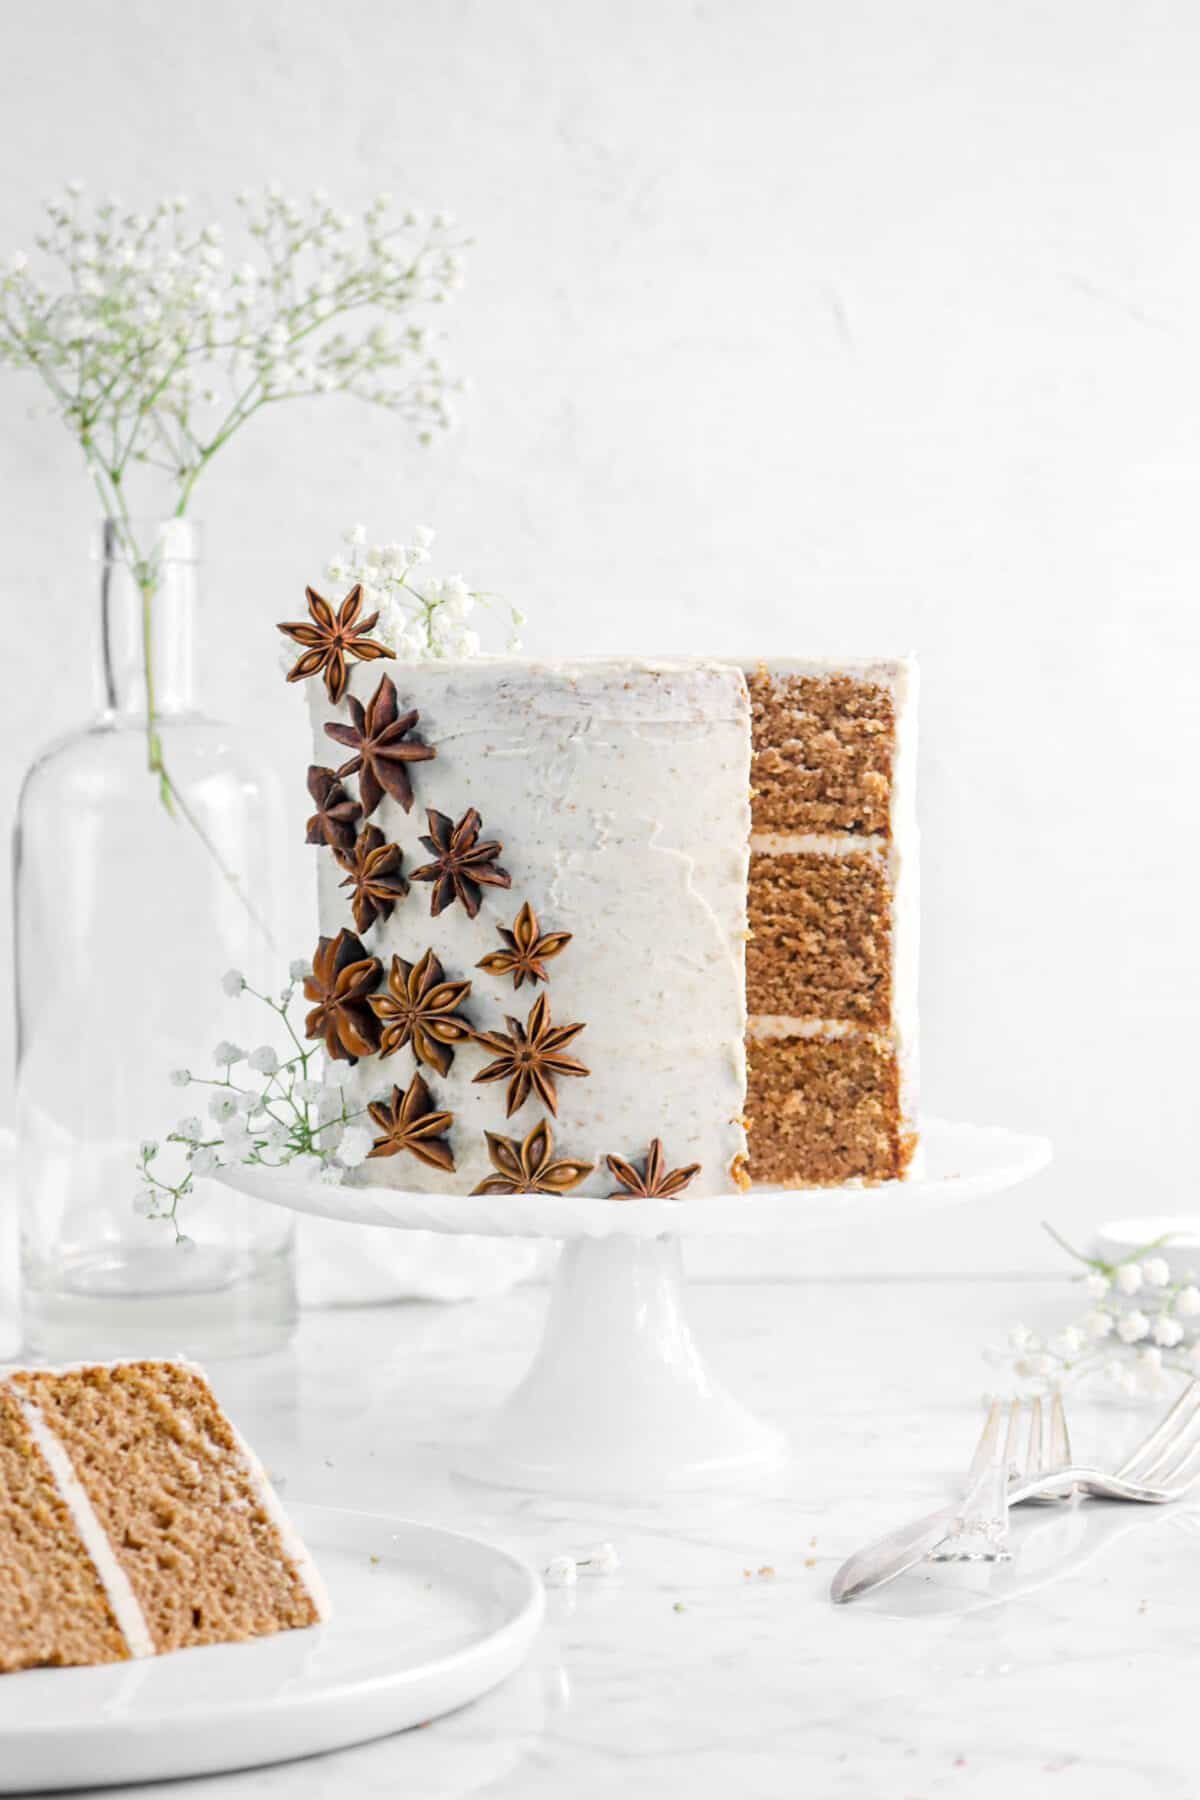 spice cake with a slice out of it with flowers, star anise, and slice on a white plate